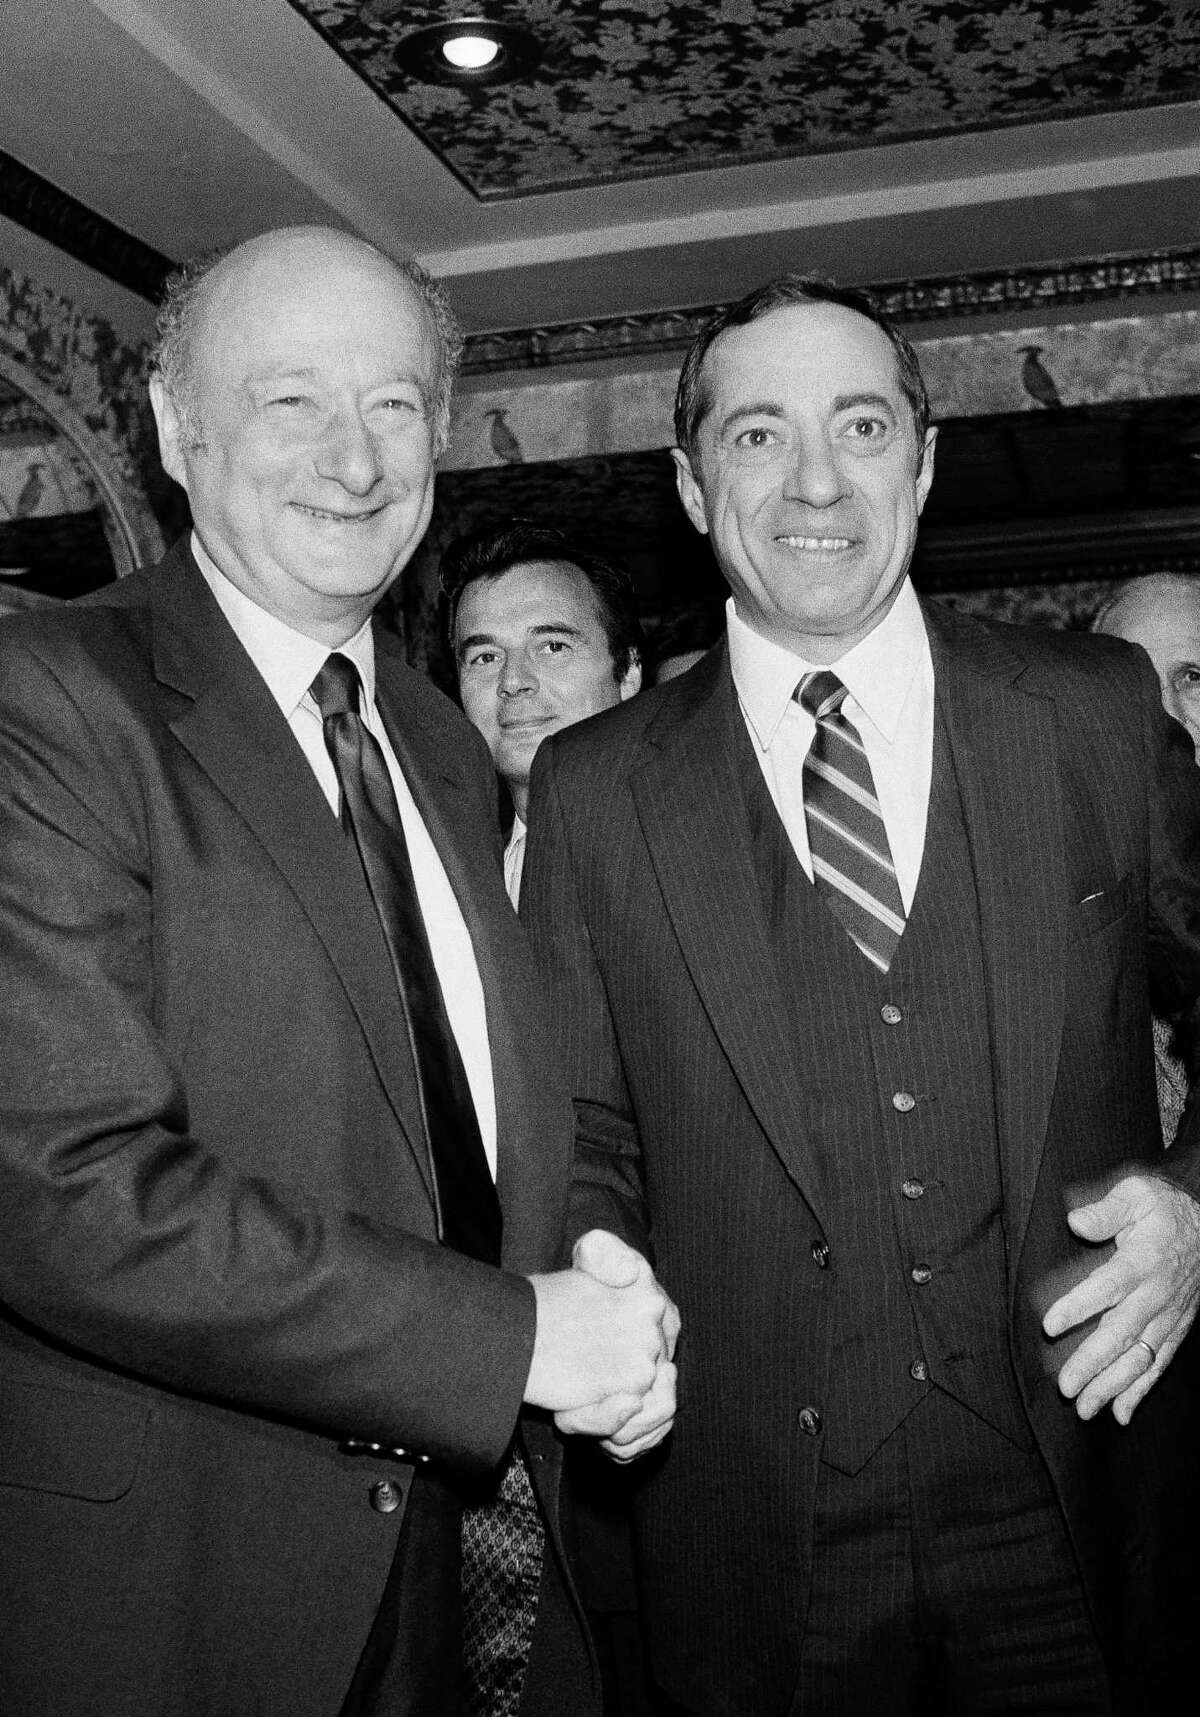 FILE - In this Sept. 21, 1982, file photo, New York Democratic gubernatorial candidates, New York Mayor Edward Koch, left, and New York Lt. Gov. Mario Cuomo, shake hands before starting their debate in New York. Cuomo, a three-term governor of New York, died Thursday, Jan. 1, 2015, the day his son Andrew started his second term as governor, the New York governor's office confirmed. He was 82.